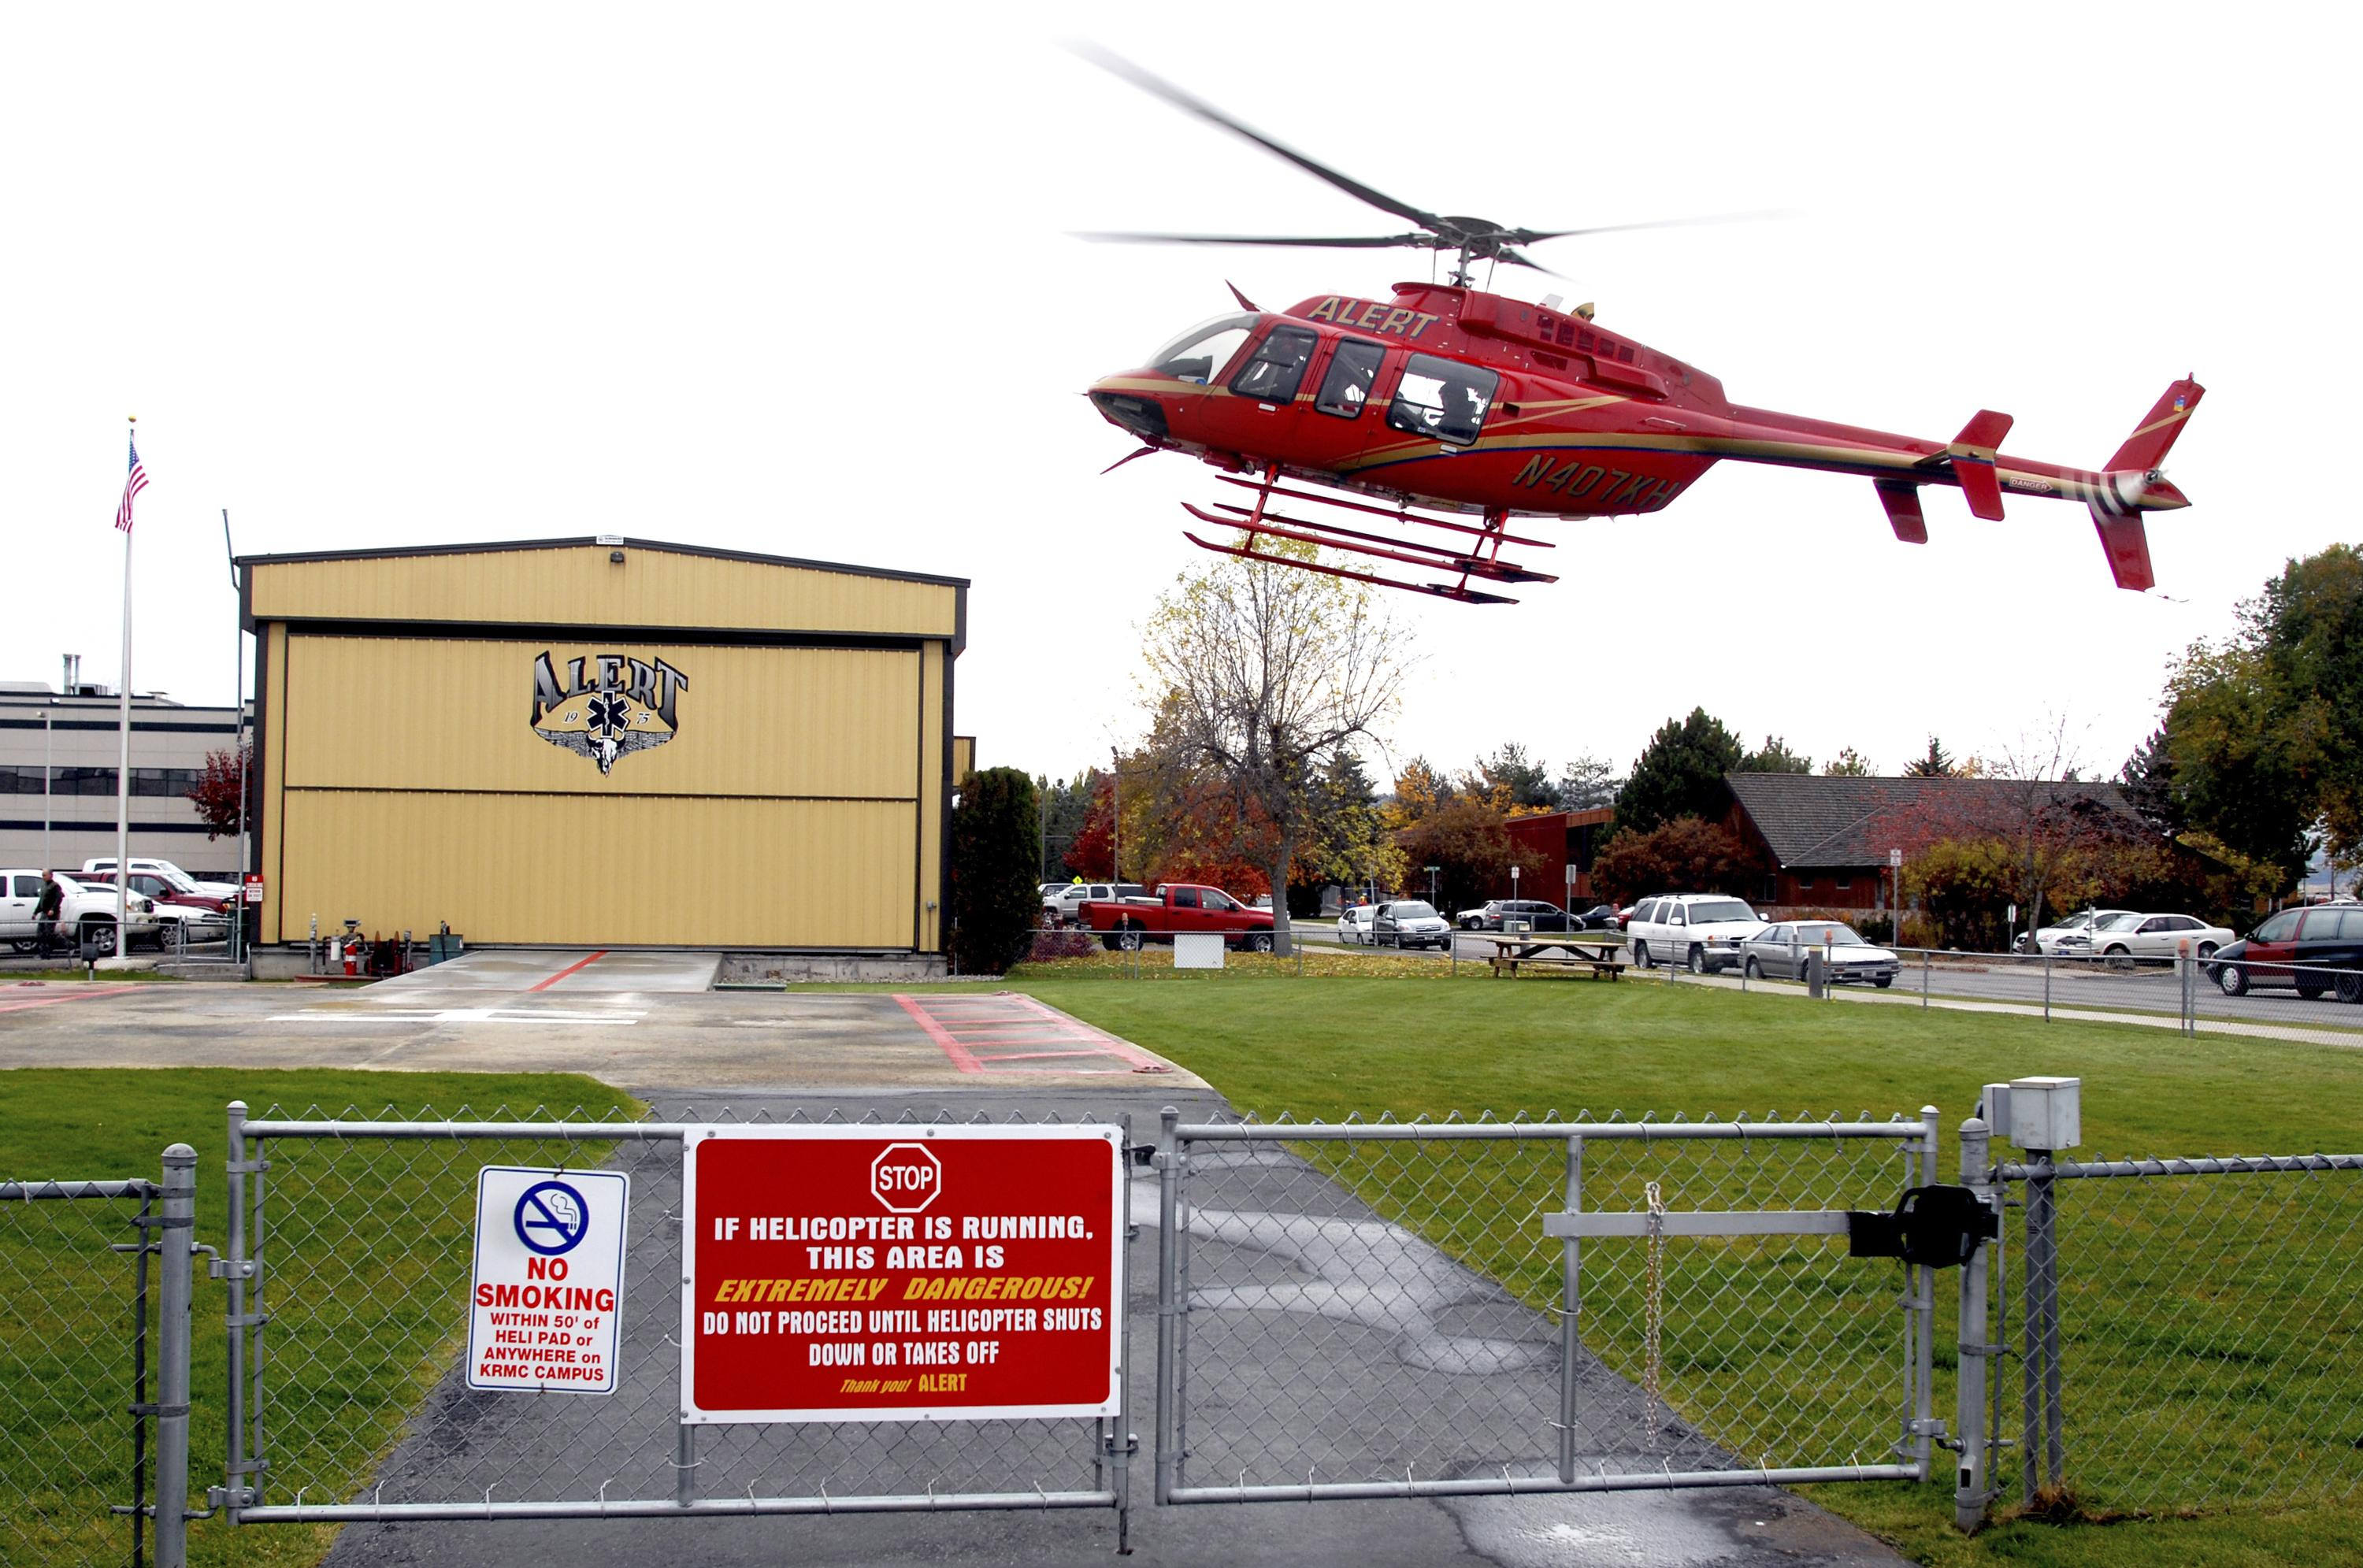 Air ambulance costs debated by Montana lawmakers   The